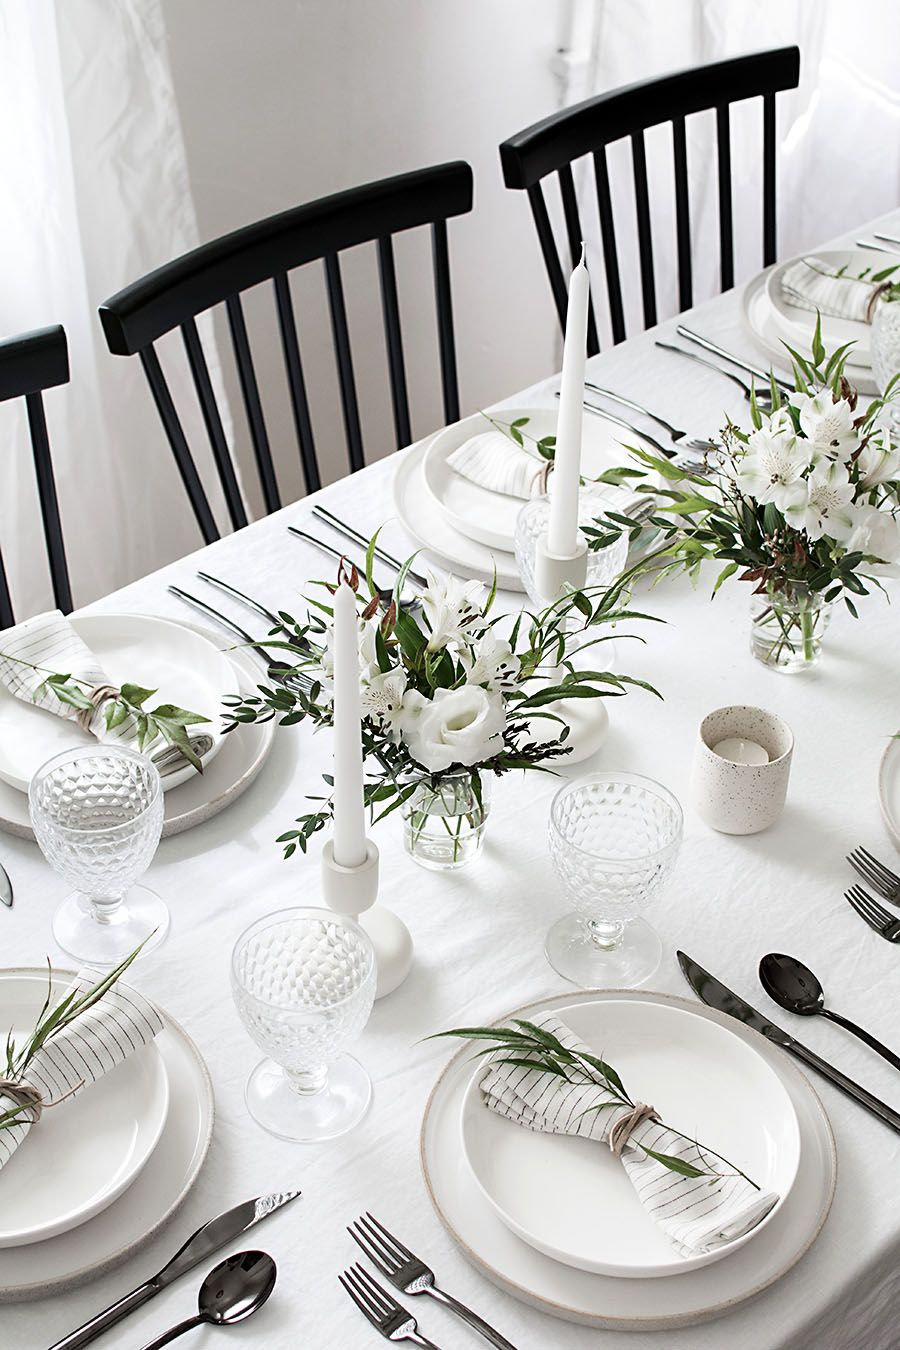 5 Tips To Set A Simple And Modern Tablescape Minimal